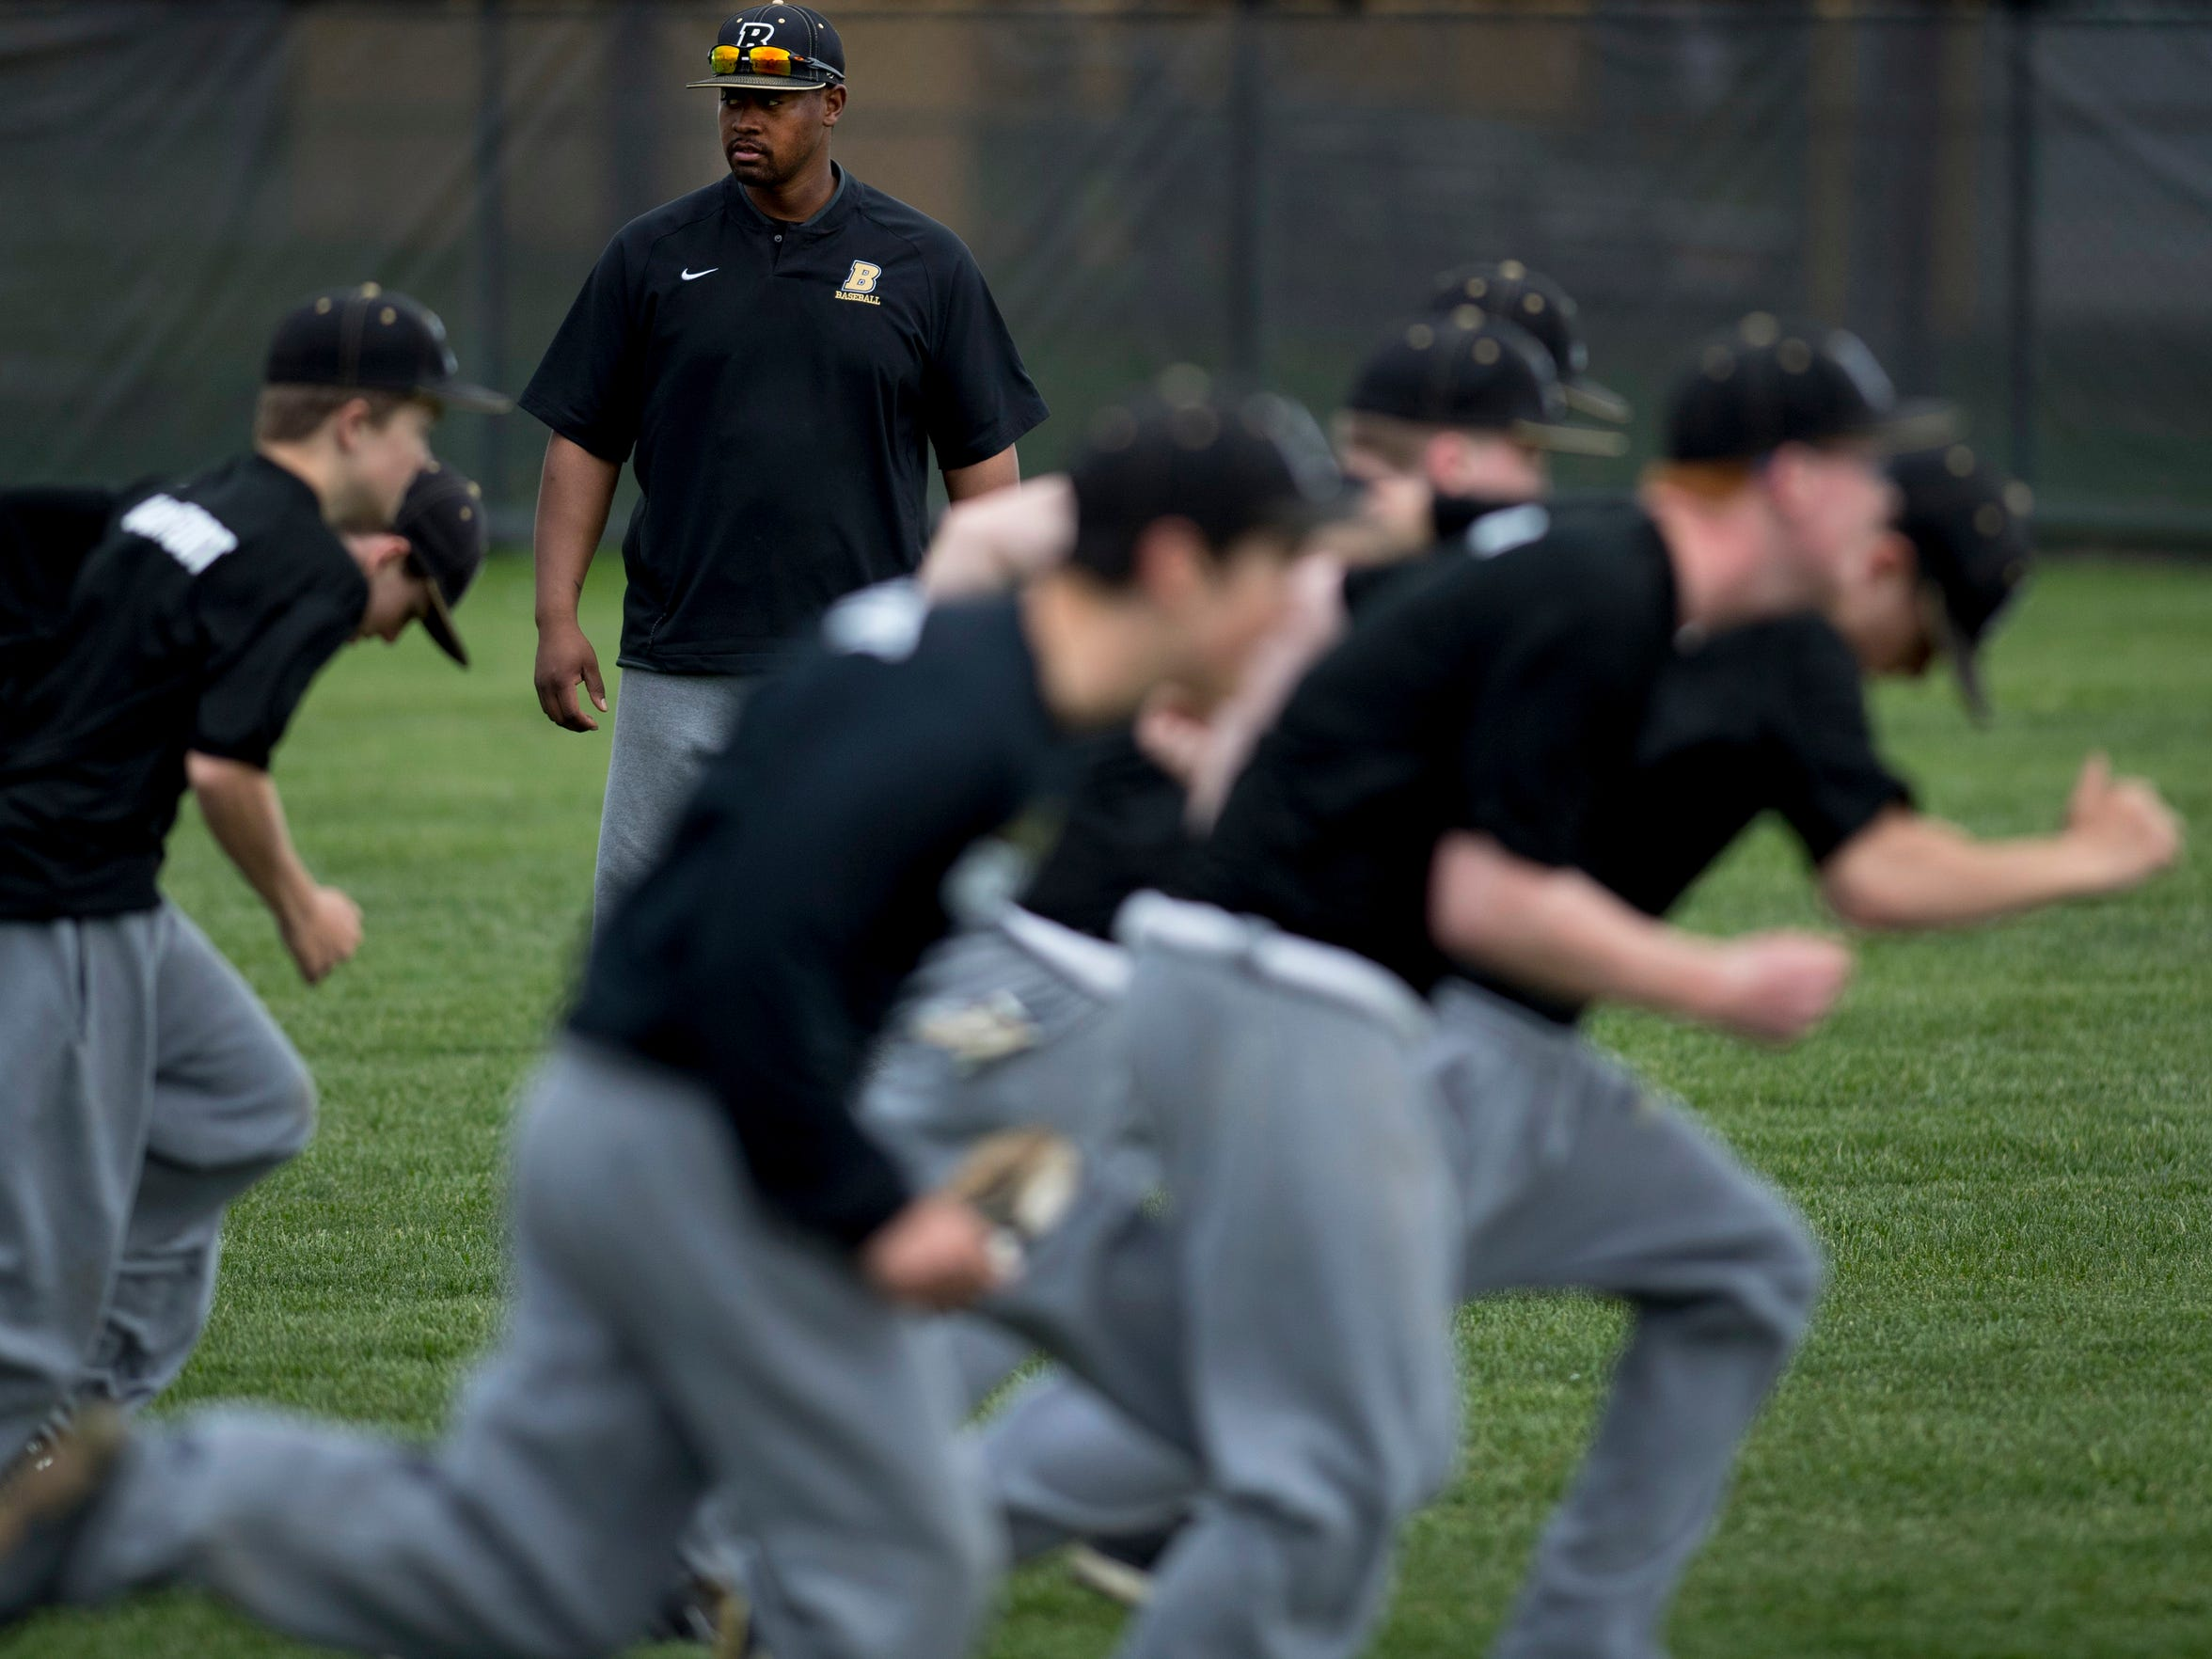 Boonville baseball coach Eric Barnes oversees his team's sprint drills during a hitting and conditioning practice Monday afternoon.